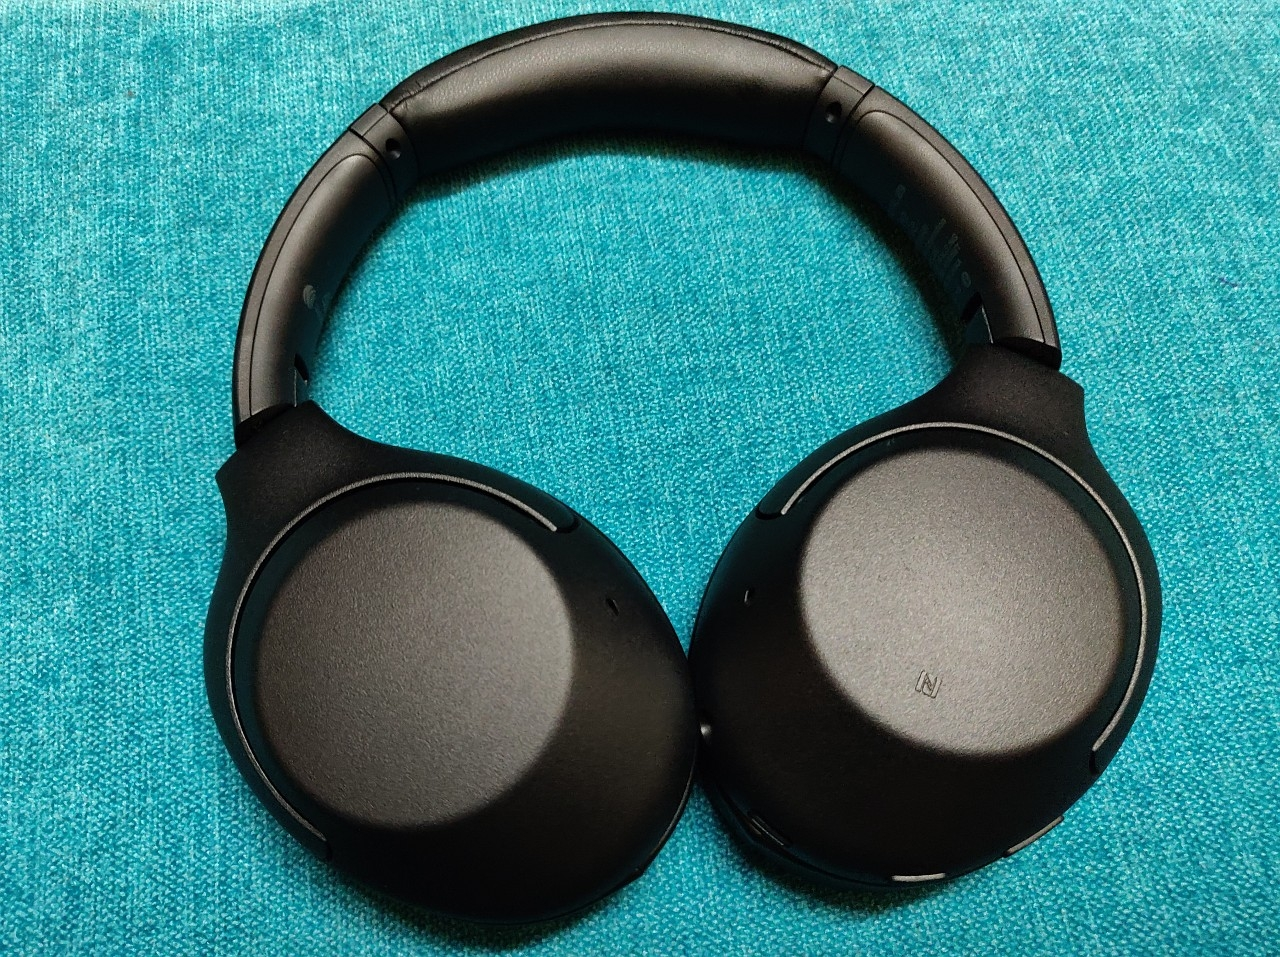 Sony Wh Xb900n Wireless Headphones Review A Feature Rich Pair For The Bassheads Tech Reviews Firstpost